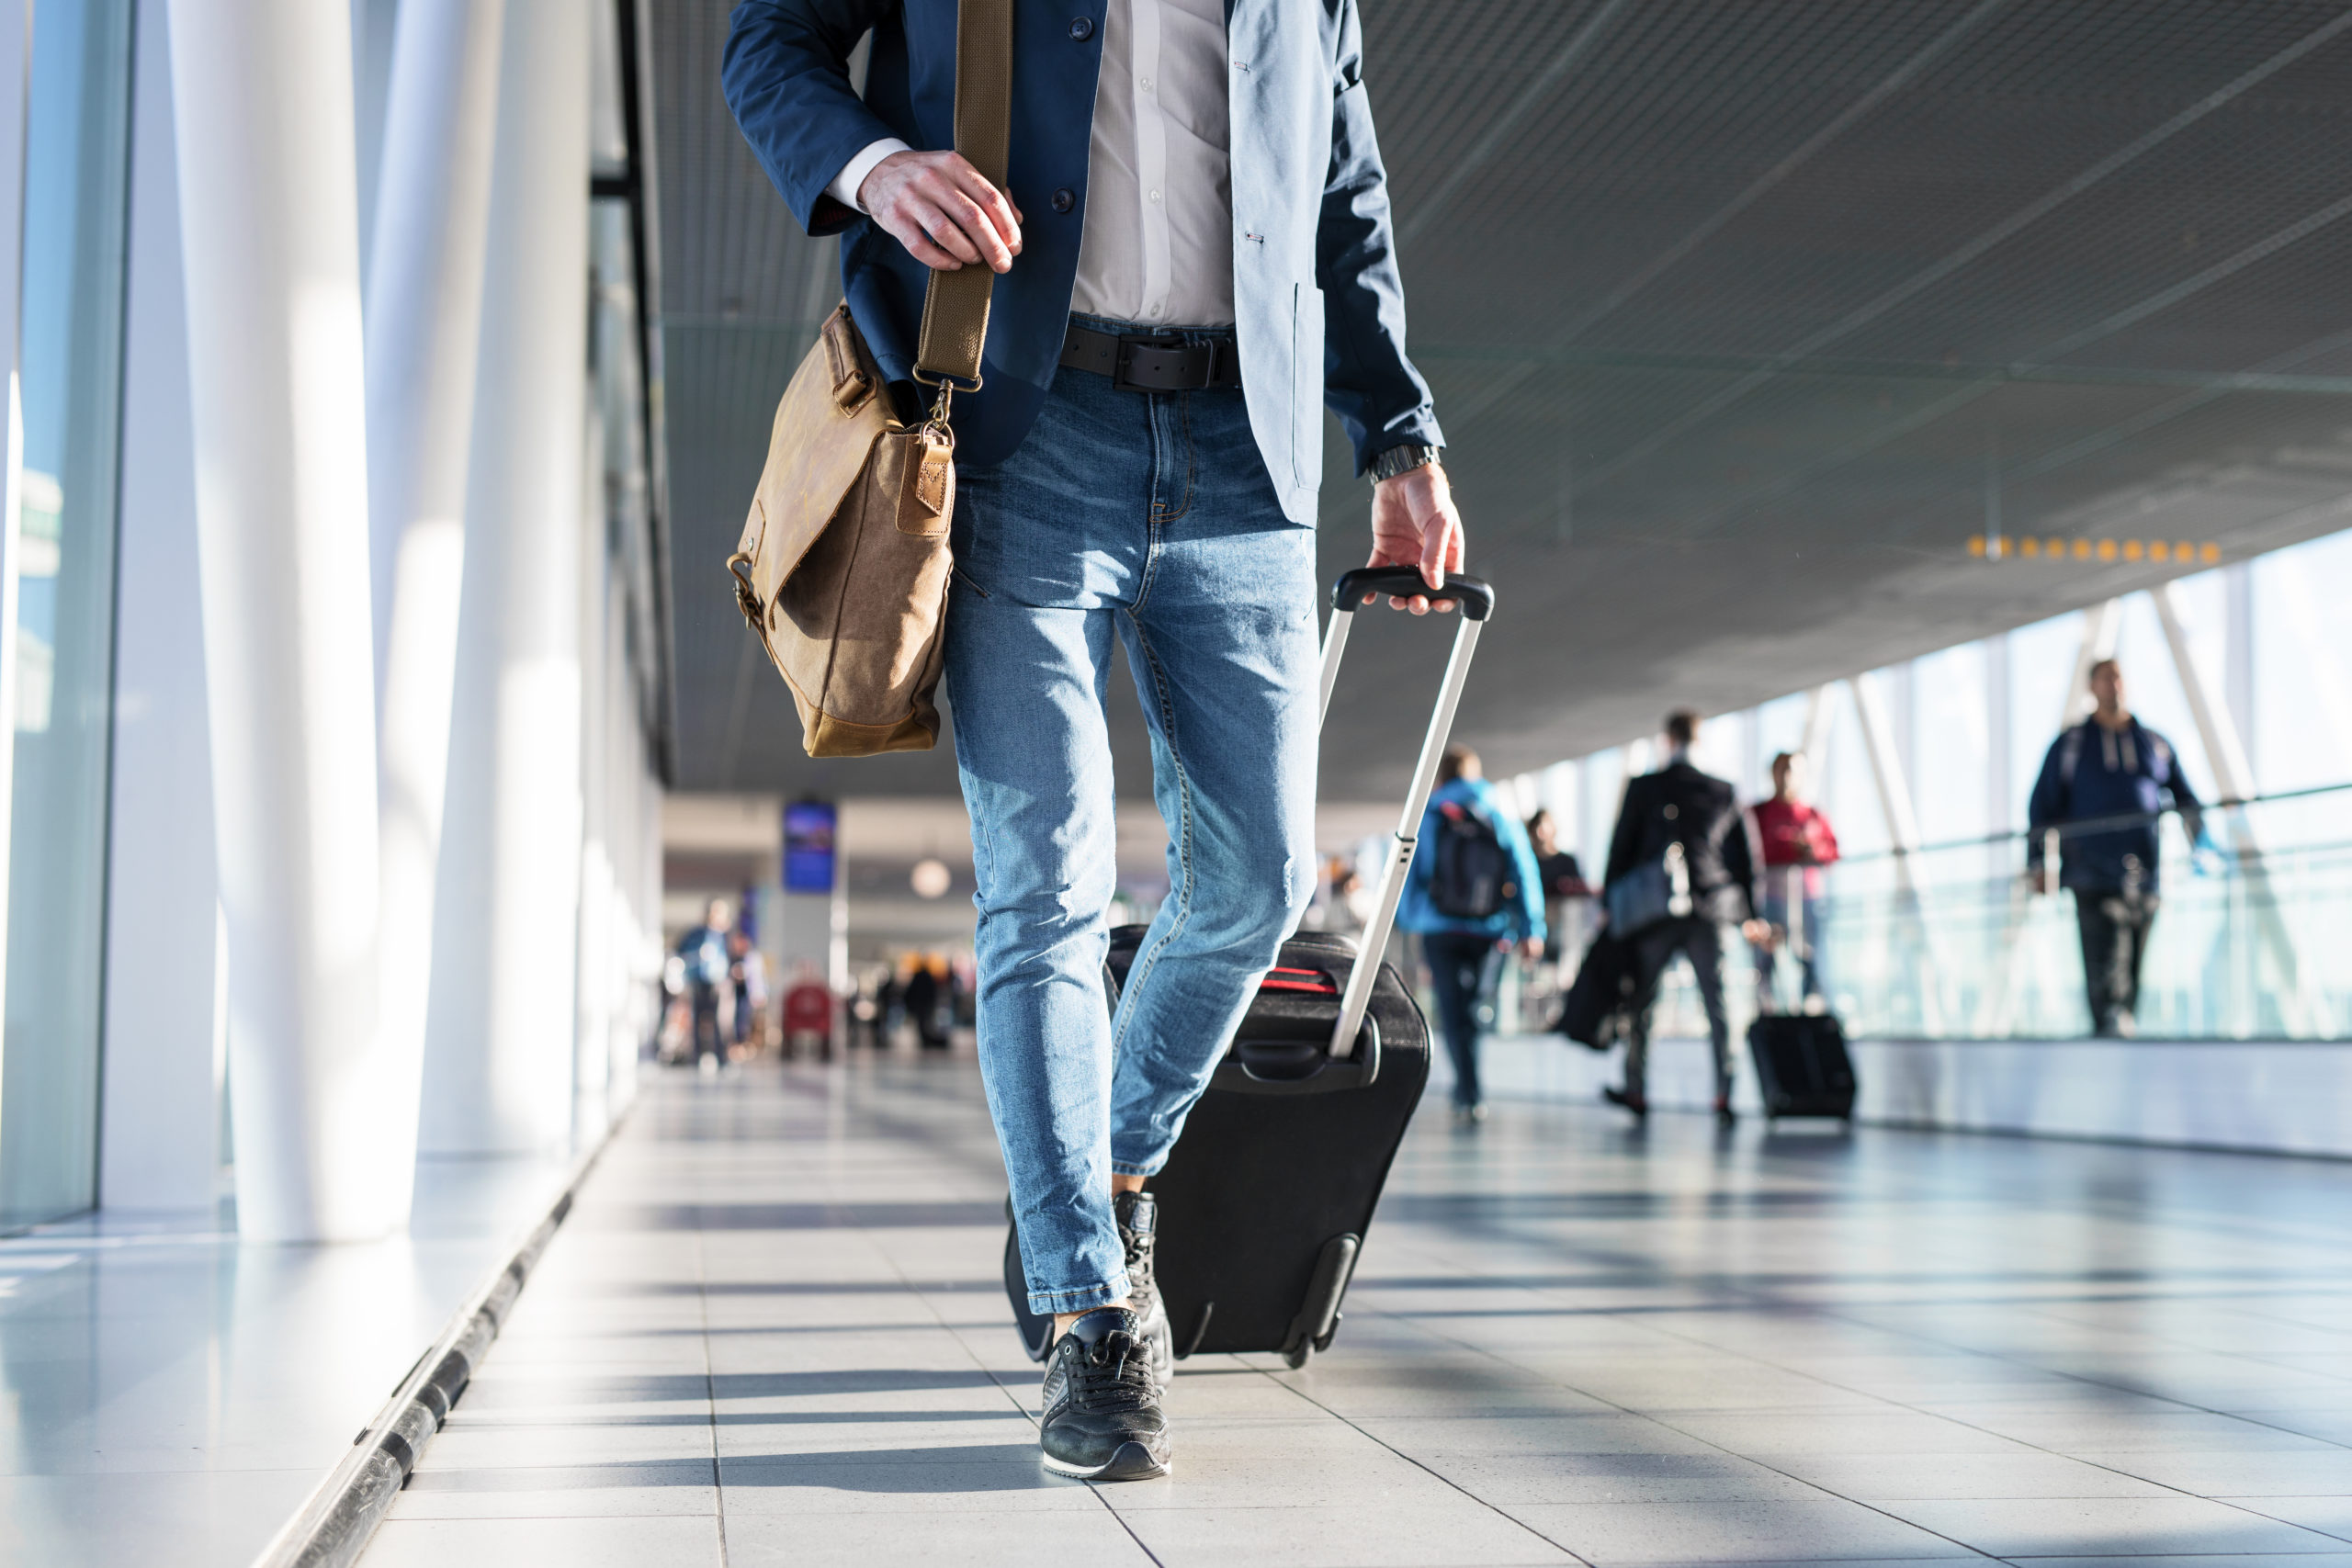 Man,With,Shoulder,Bag,And,Hand,Luggage,Walking,In,Airport